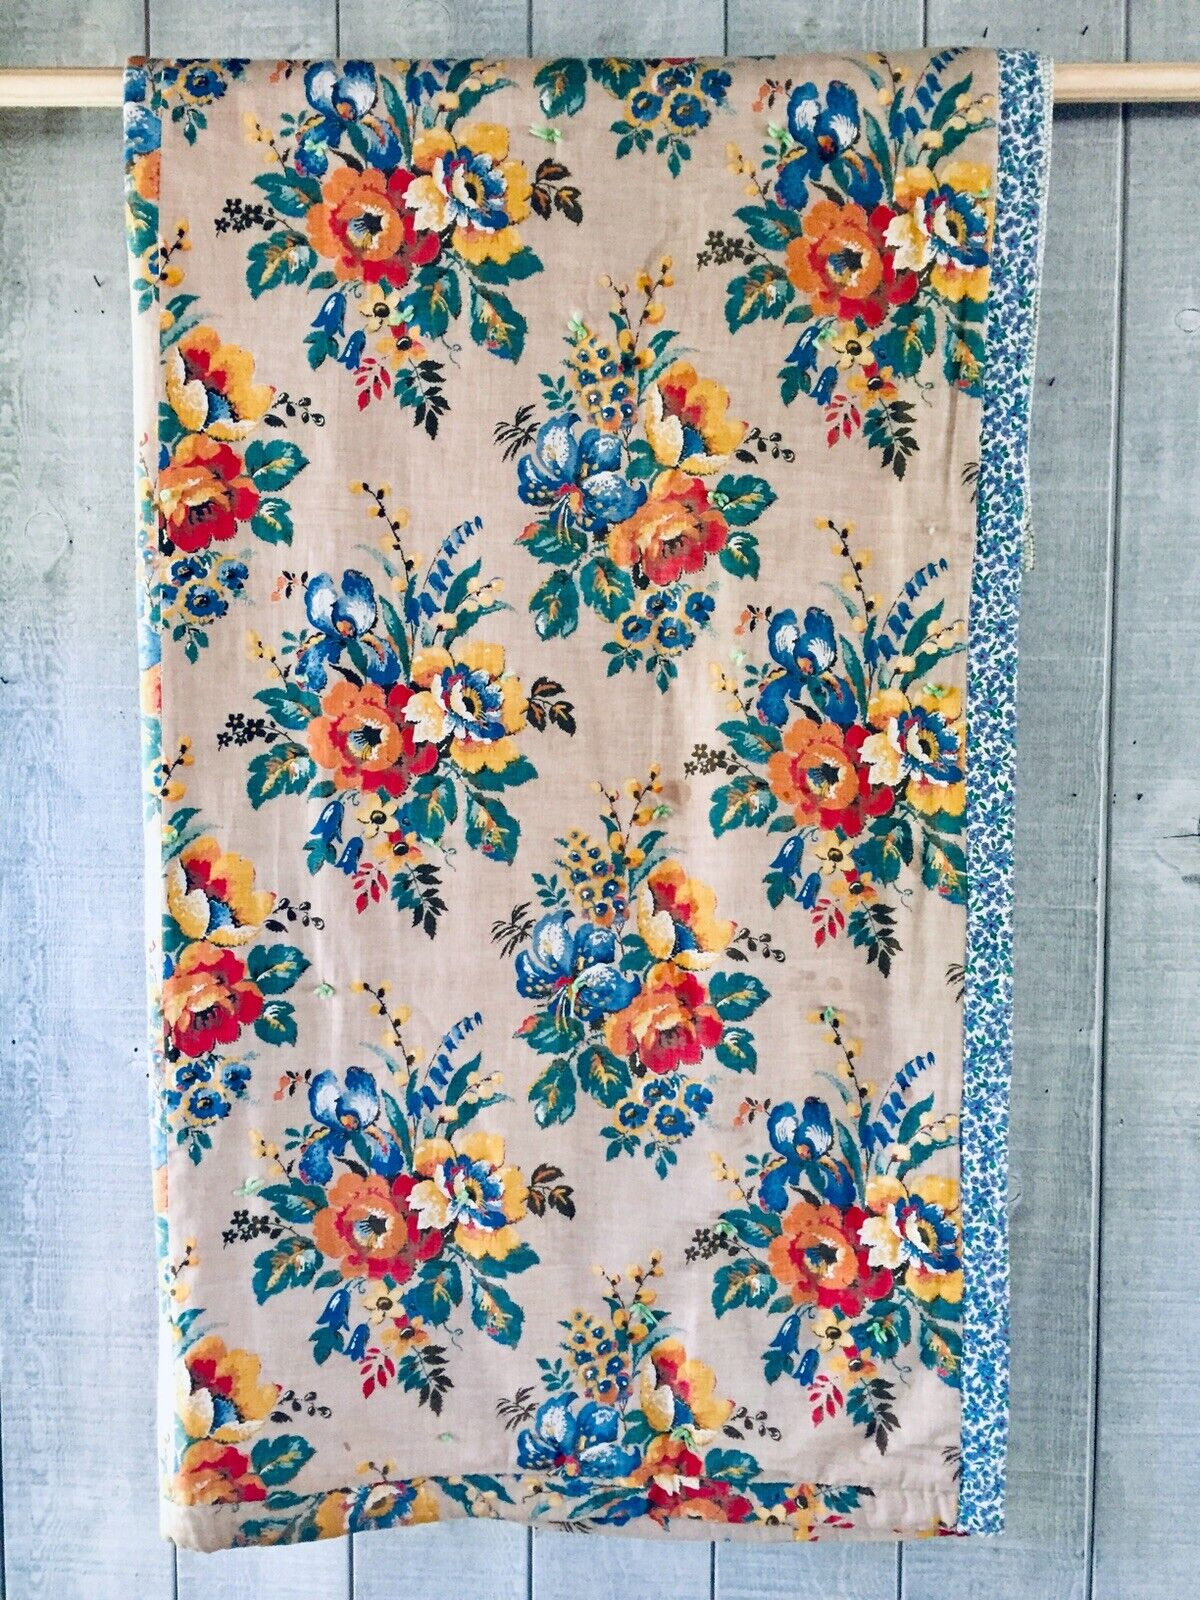 Vintage Floral Whole Cloth Hand Tied Quilt Blanket 73  x 64